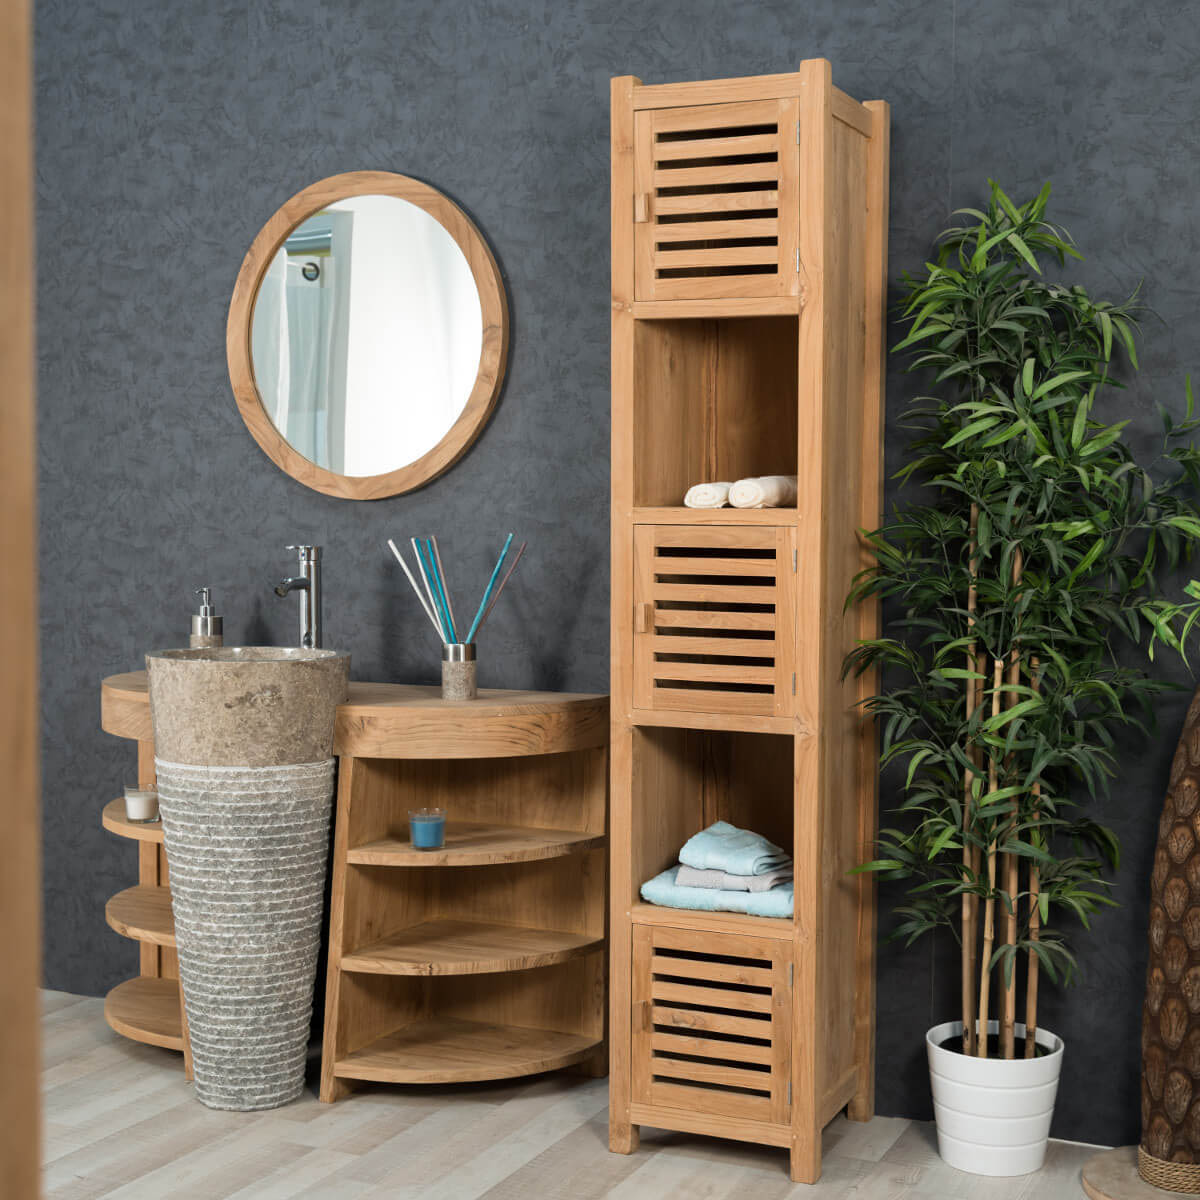 colonne de rangement en bois massif 200cm meubles salle de bain wanda collection. Black Bedroom Furniture Sets. Home Design Ideas